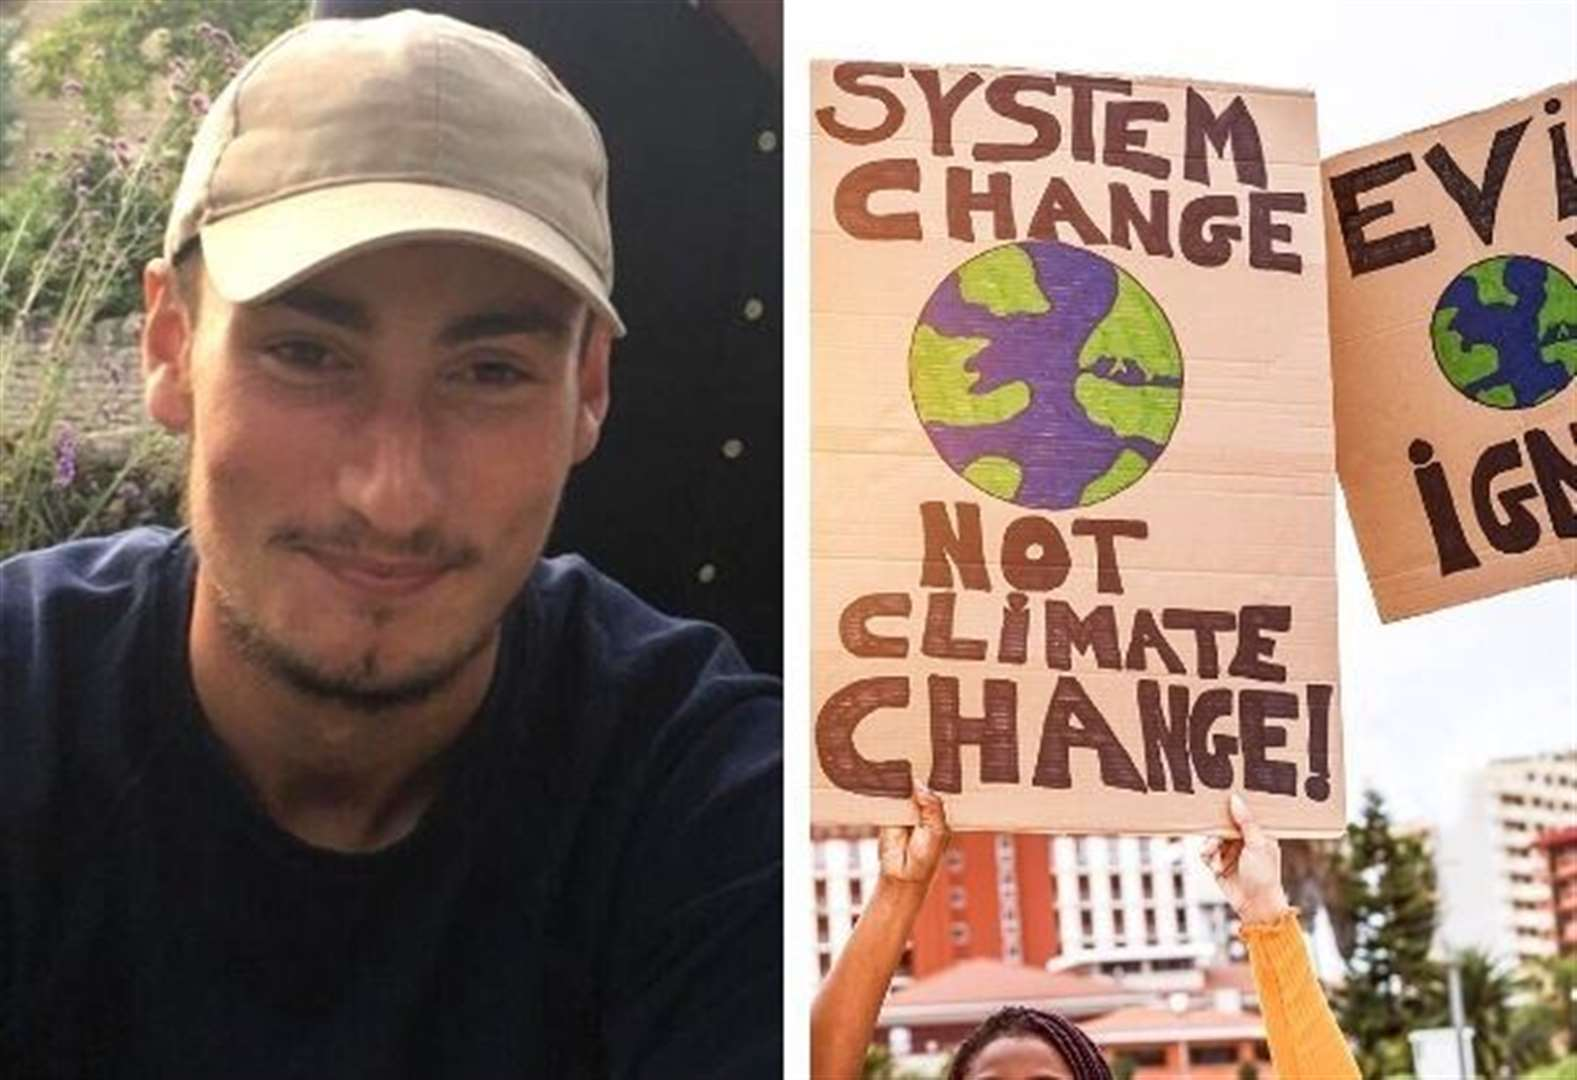 'I'm going on hunger strike to stop climate change'